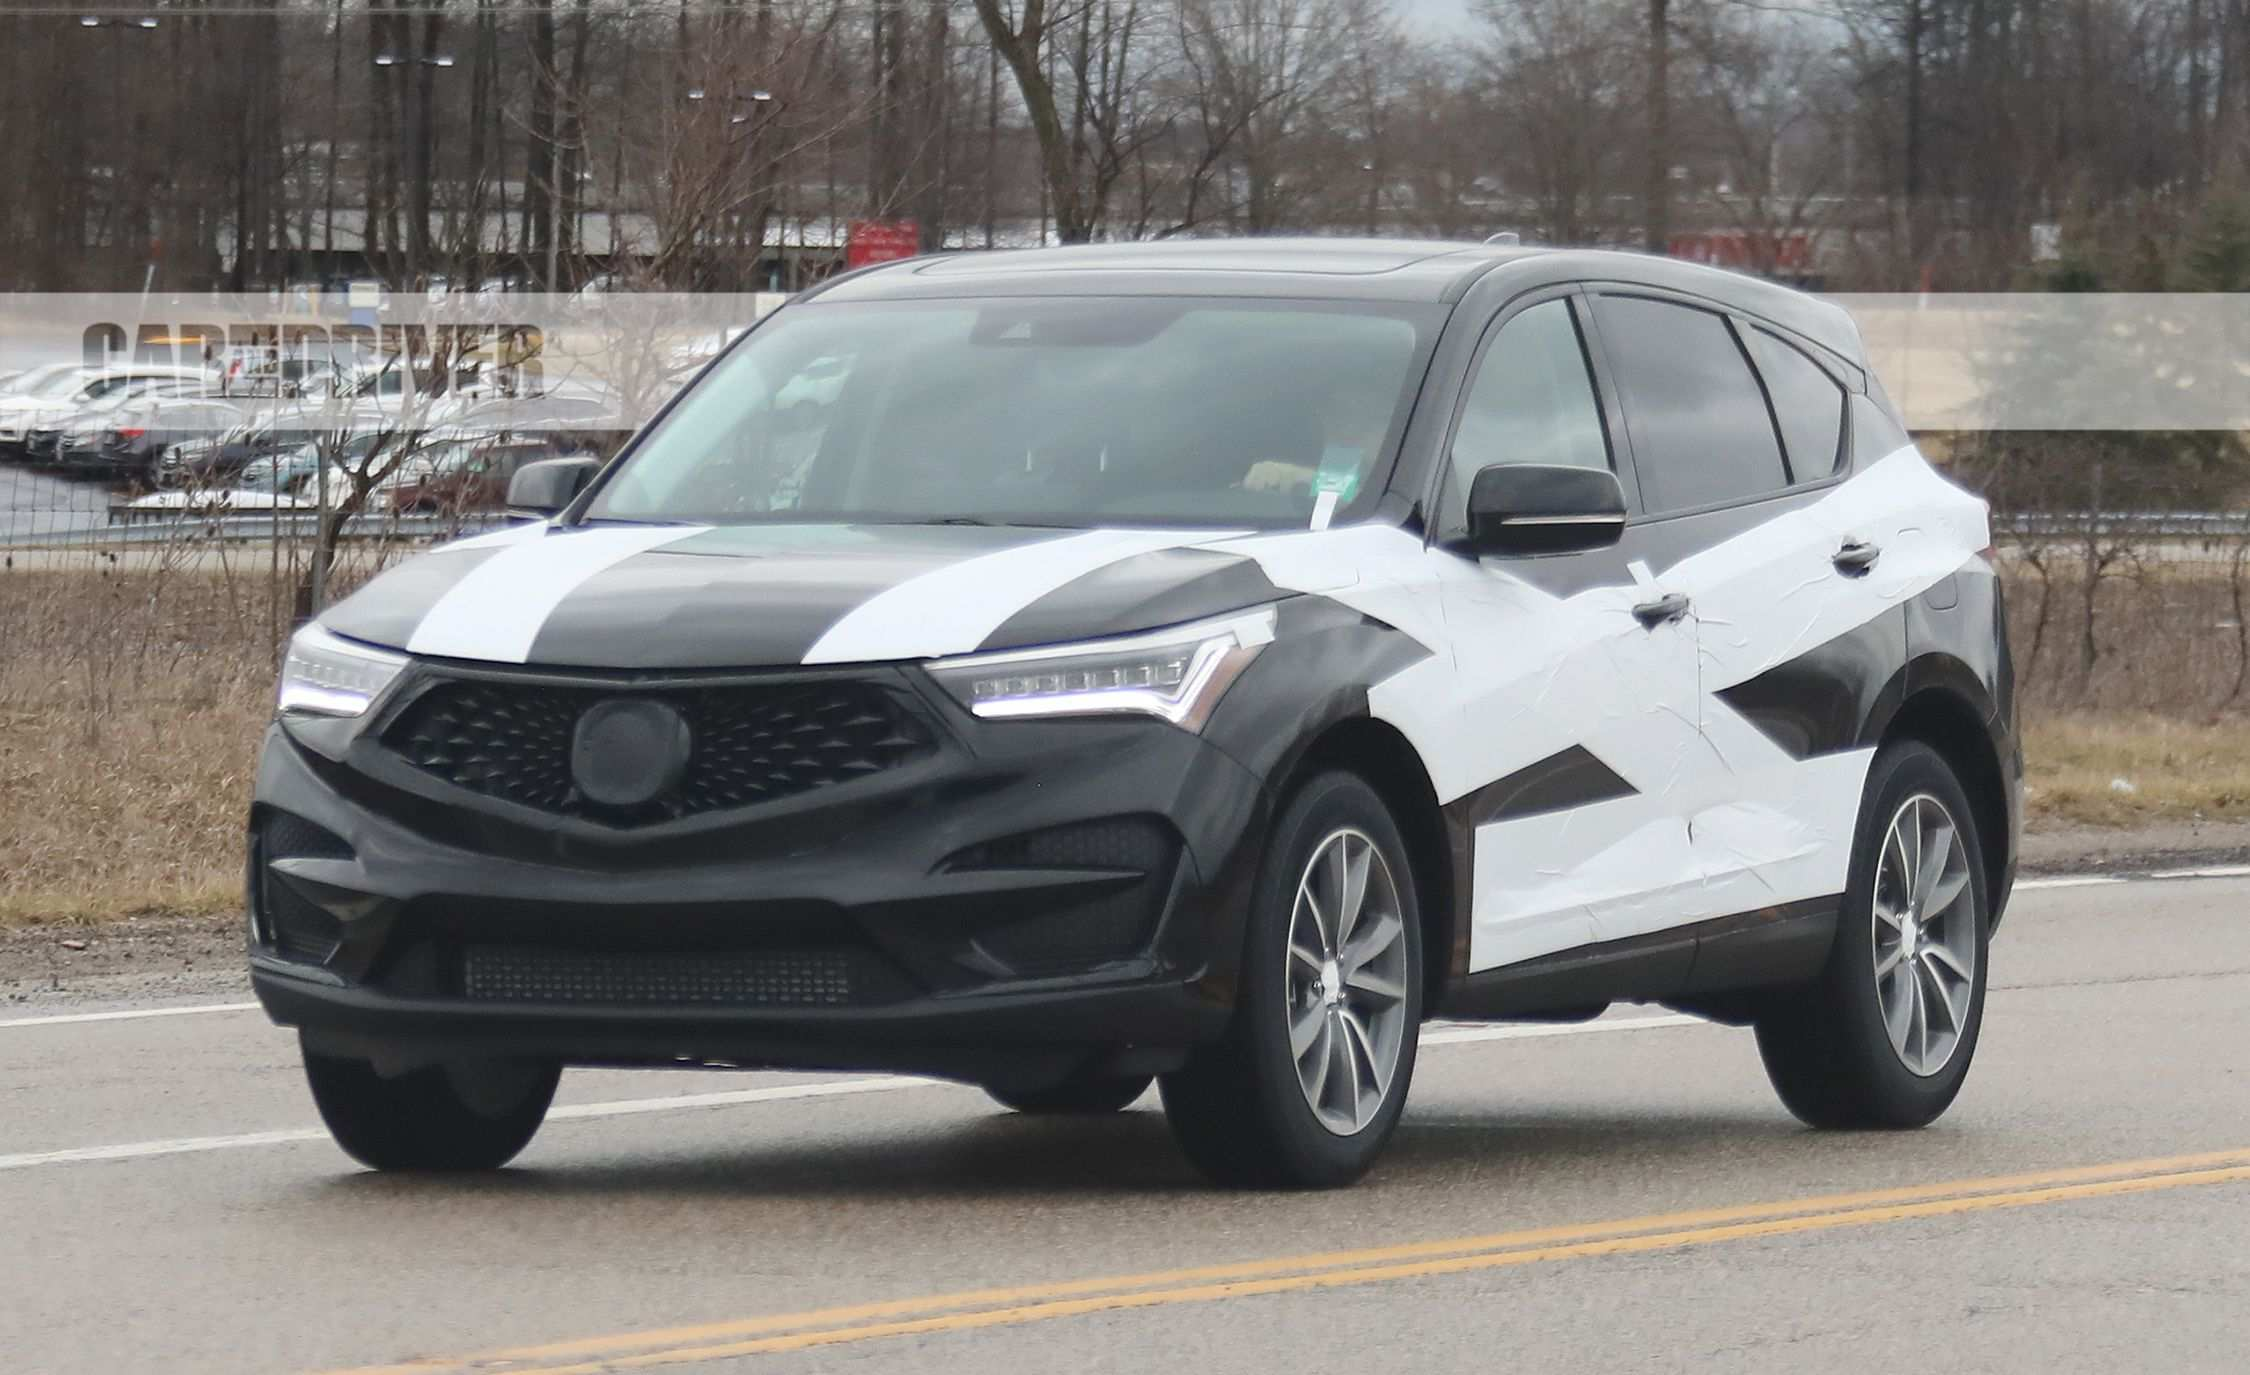 82 Great The Acura Rdx 2019 Release Date Usa Spy Shoot Interior for The Acura Rdx 2019 Release Date Usa Spy Shoot